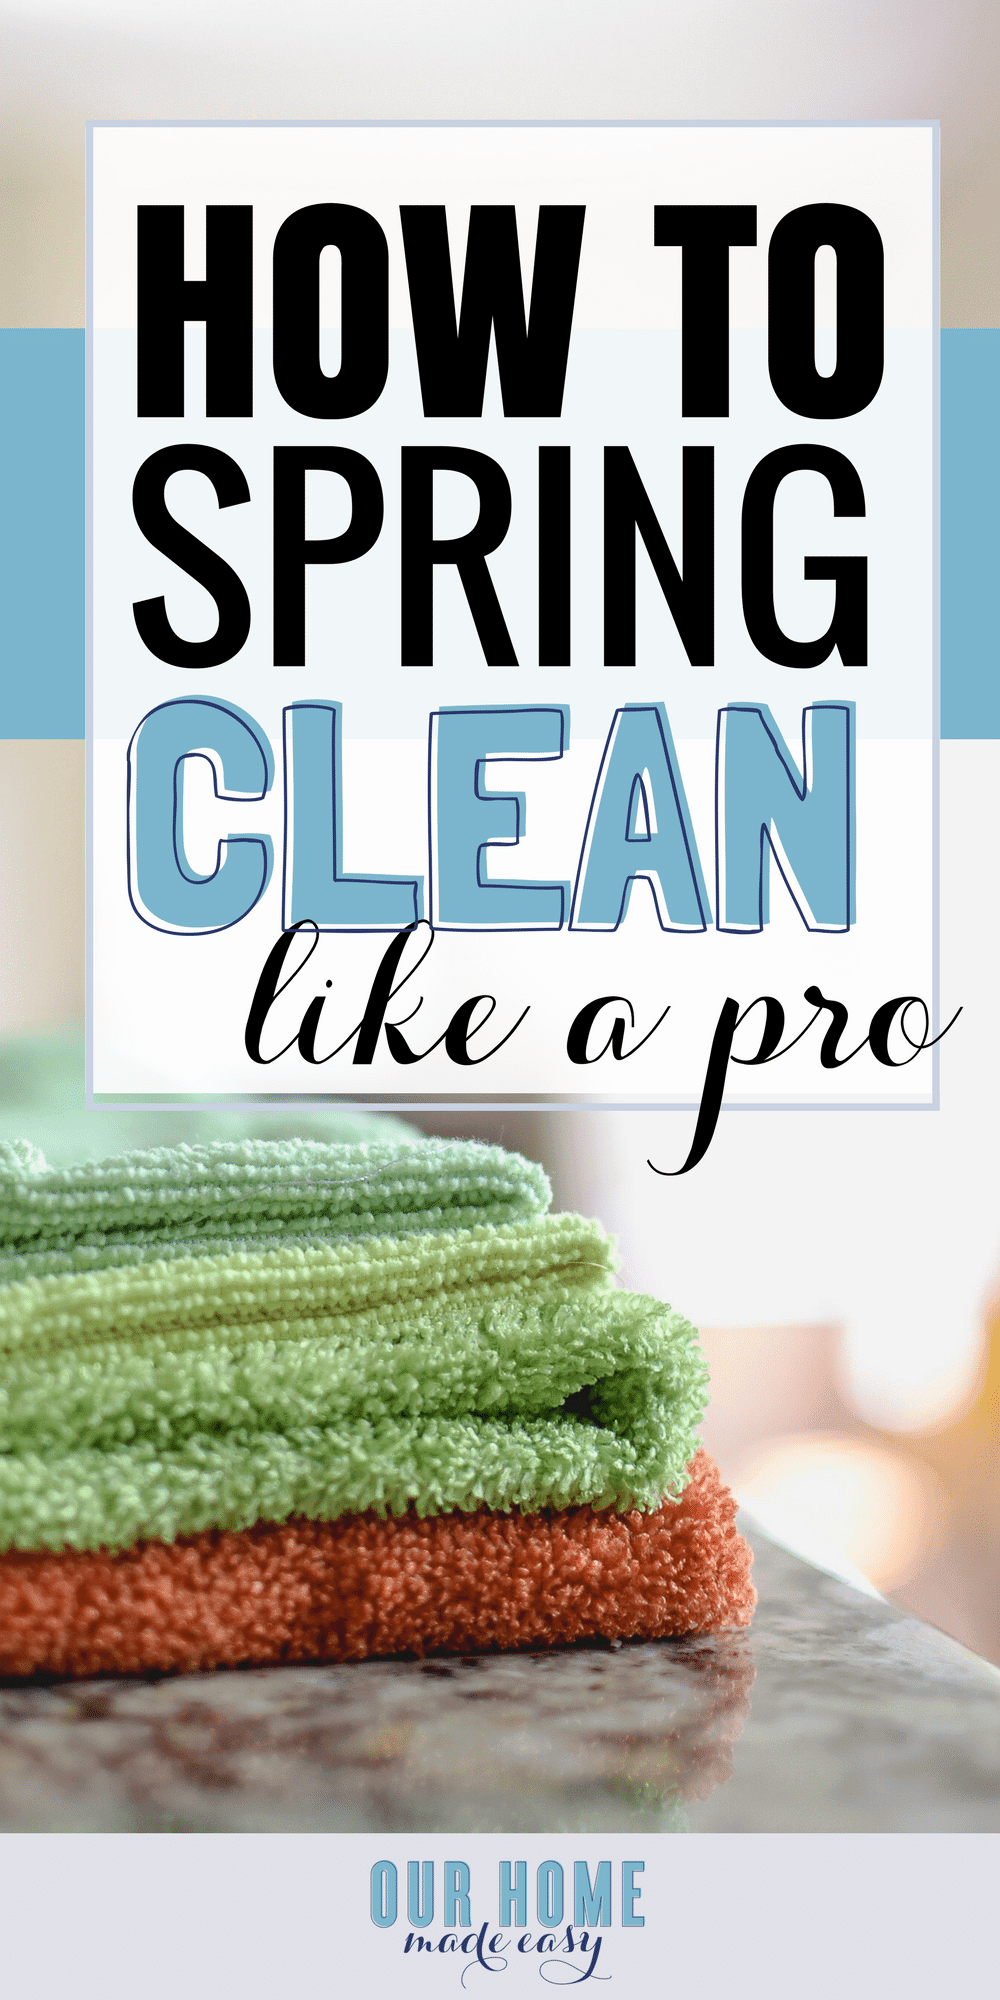 Make Spring cleaning easy by tackling a few main items! Grab your free Spring cleaning checklist to make sure you don't miss a thing this year! #cleaning #organization #printable #clean #declutter